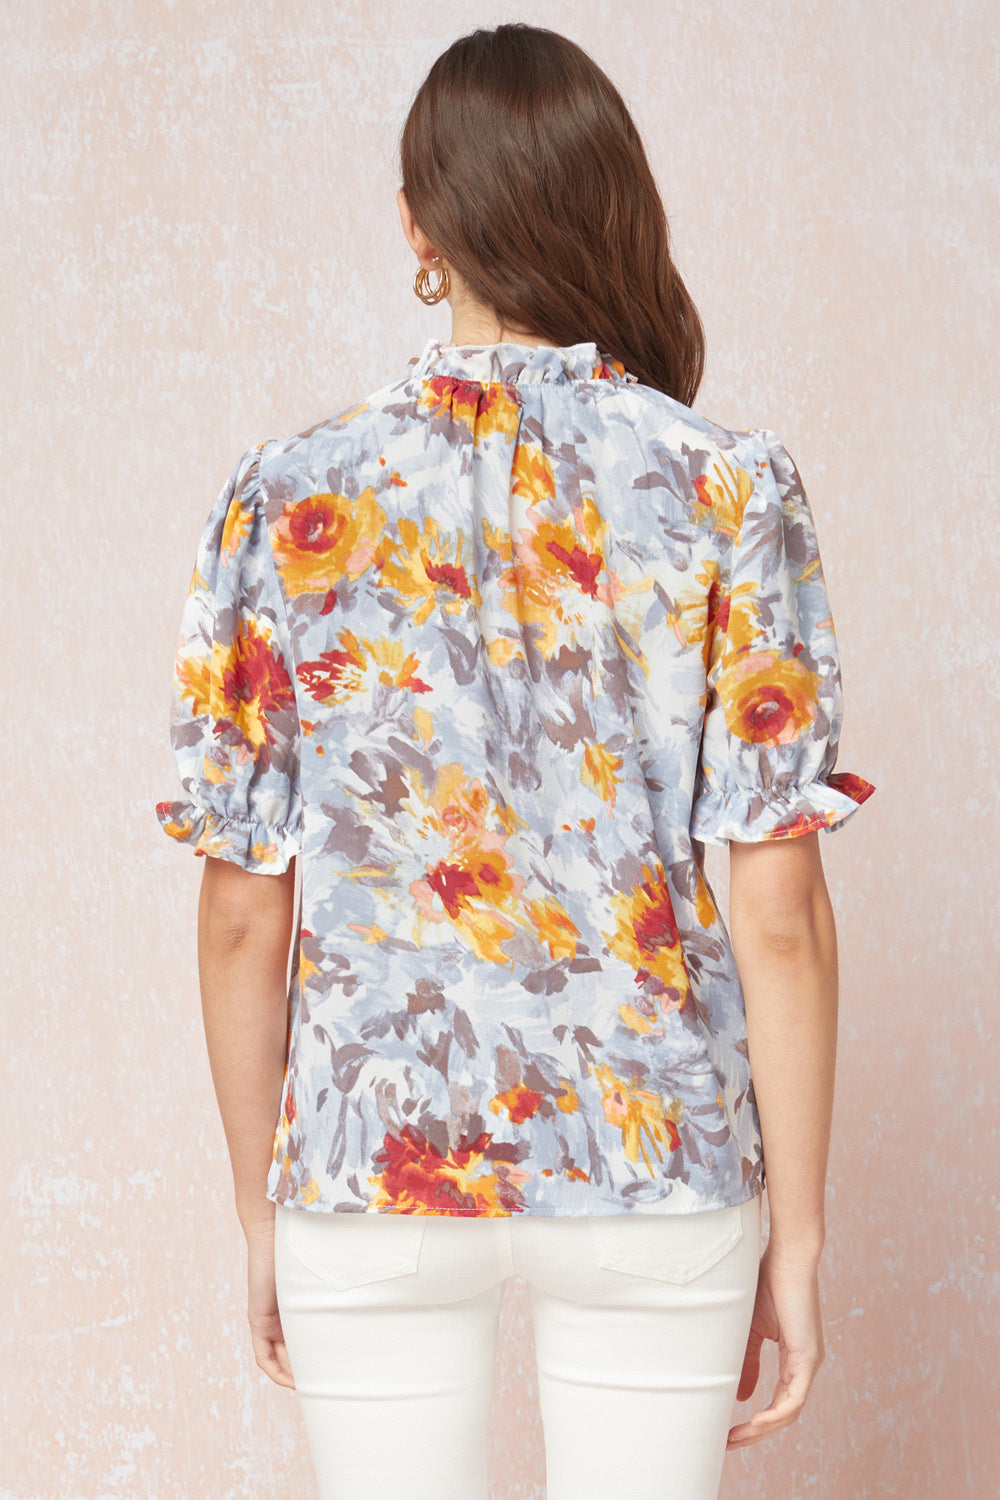 Tilly - bright floral